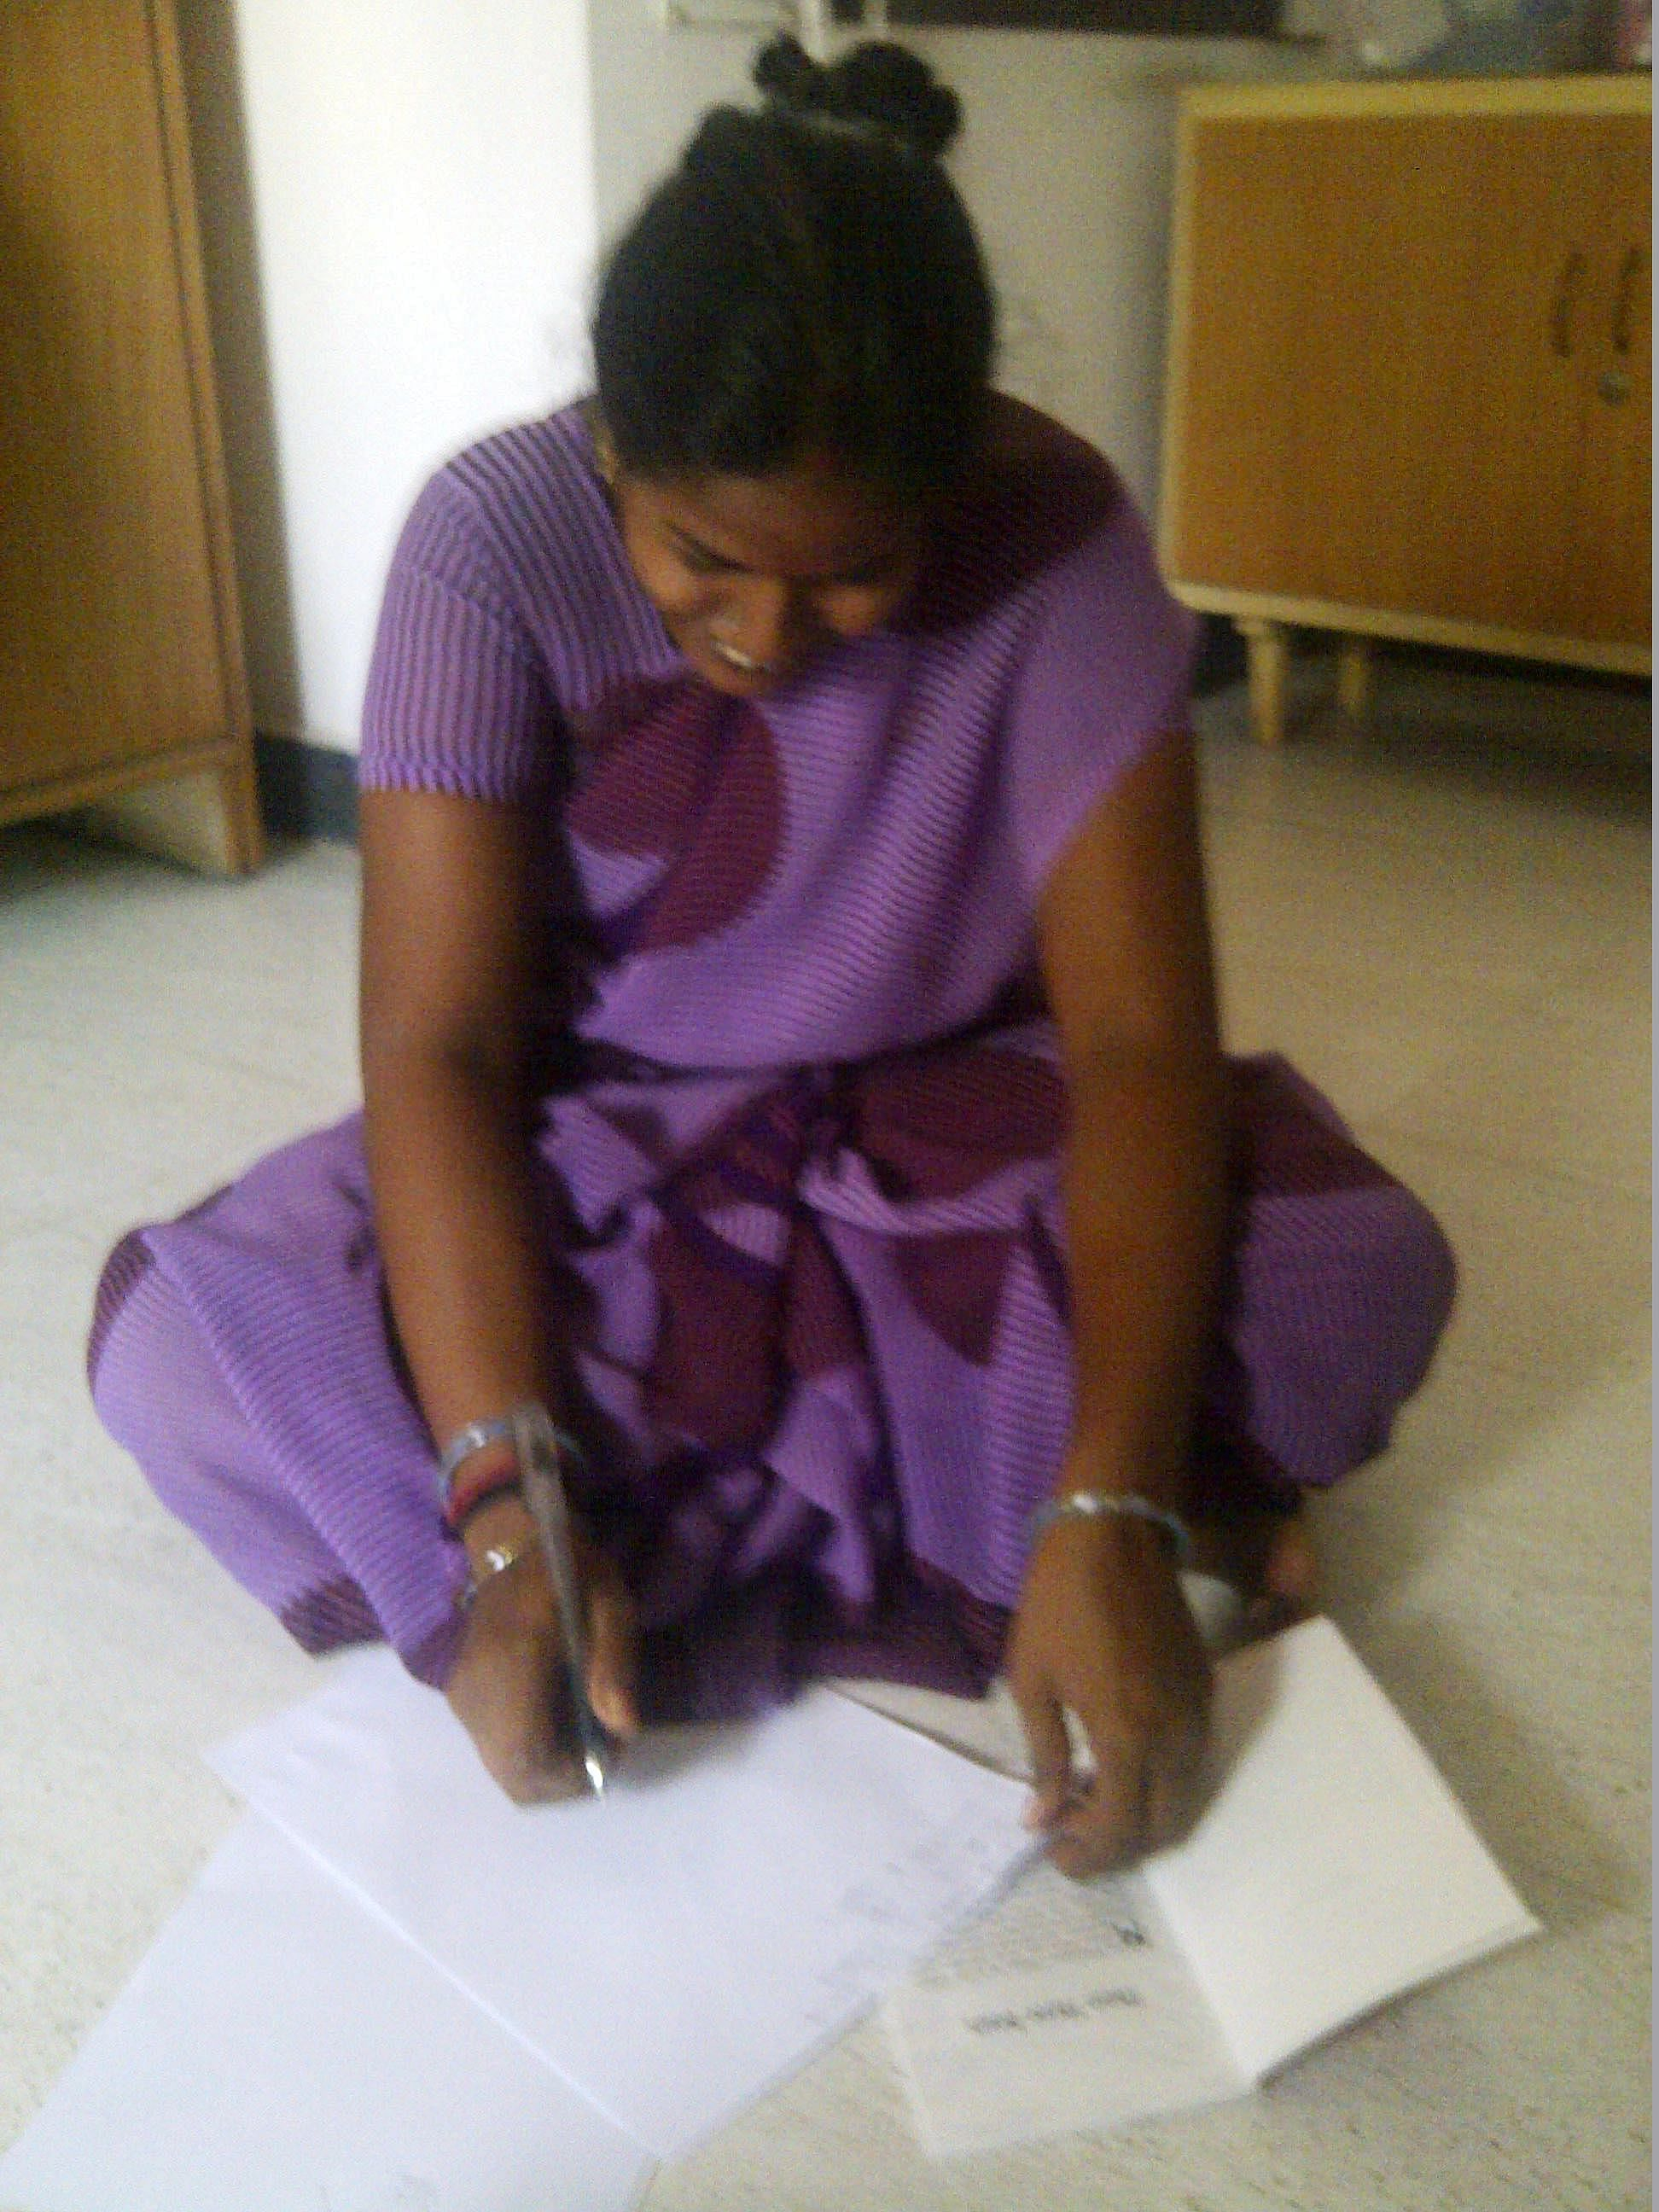 Education has always been Kani's dream. After Kani finishes with her work, Gita, her employer, sits down with her and they study together. (Credit: Kirthi Jayakumar\WFS)